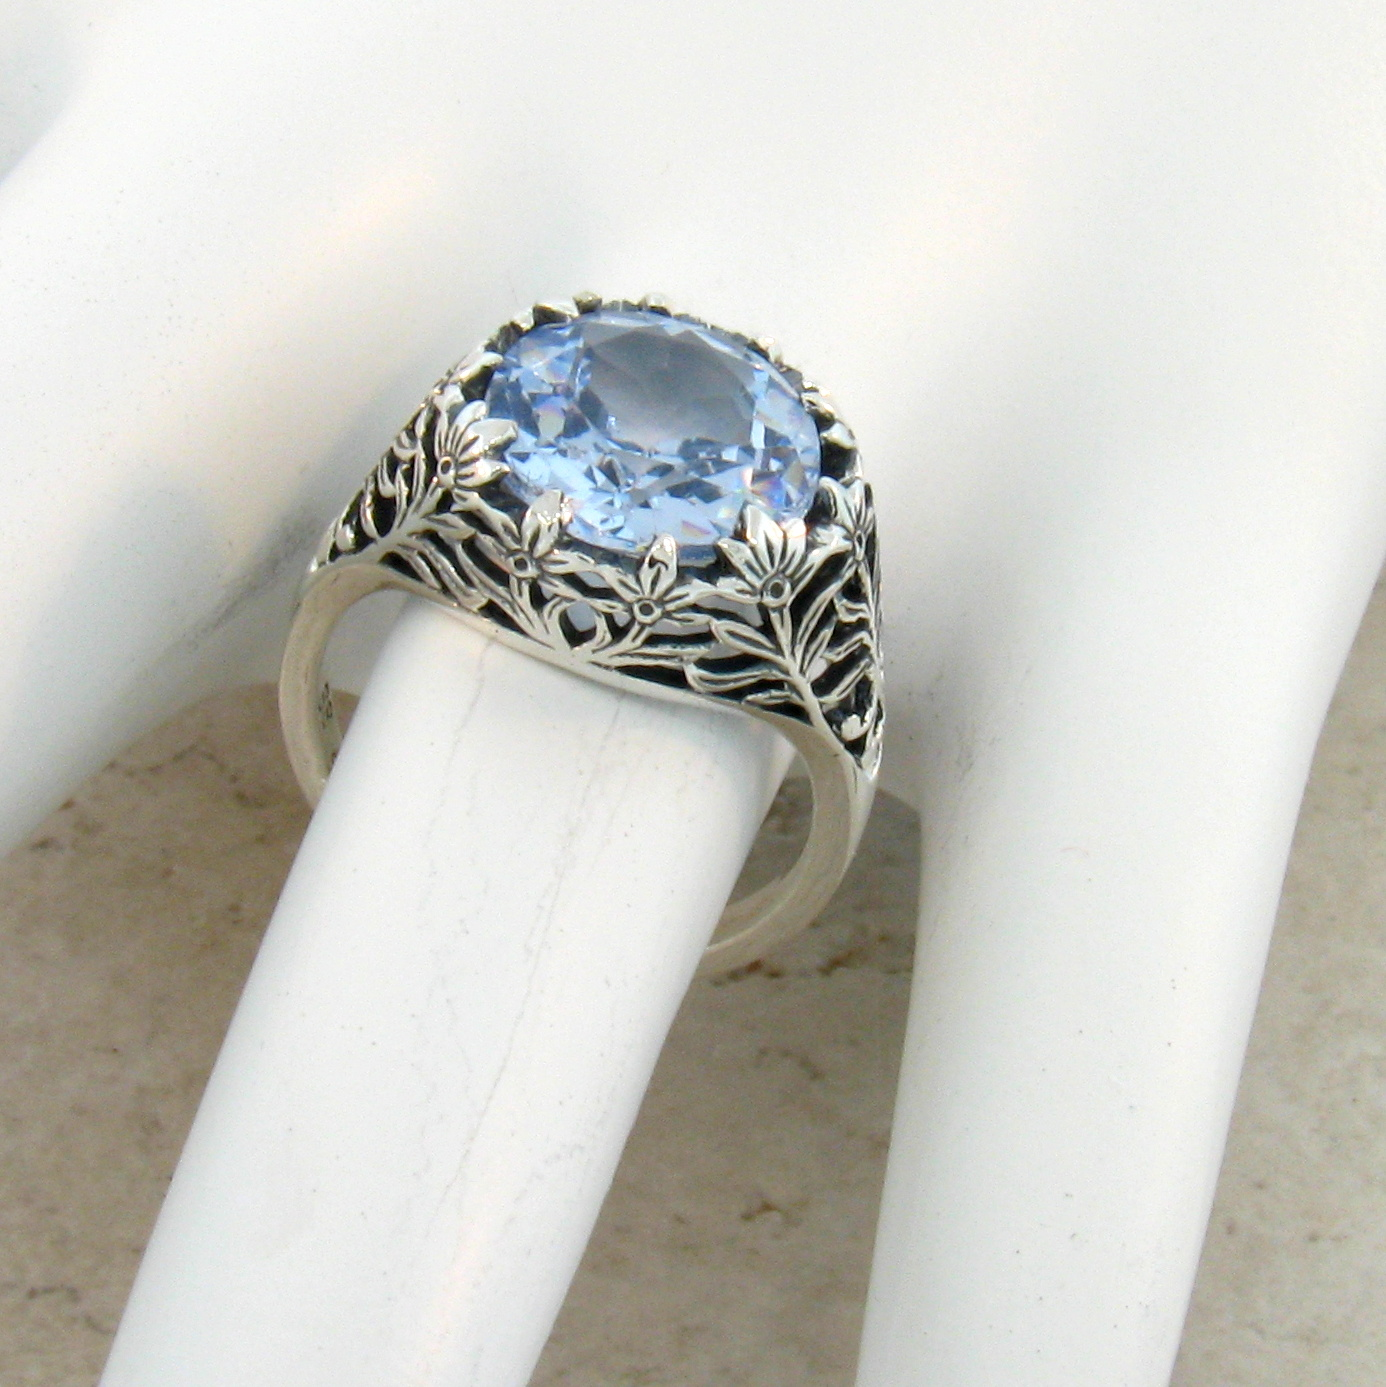 4.5 CT SIM SKY BLUE TOPAZ ANTIQUE STYLE .925 STERLING SILVER RING SIZE 5 #372